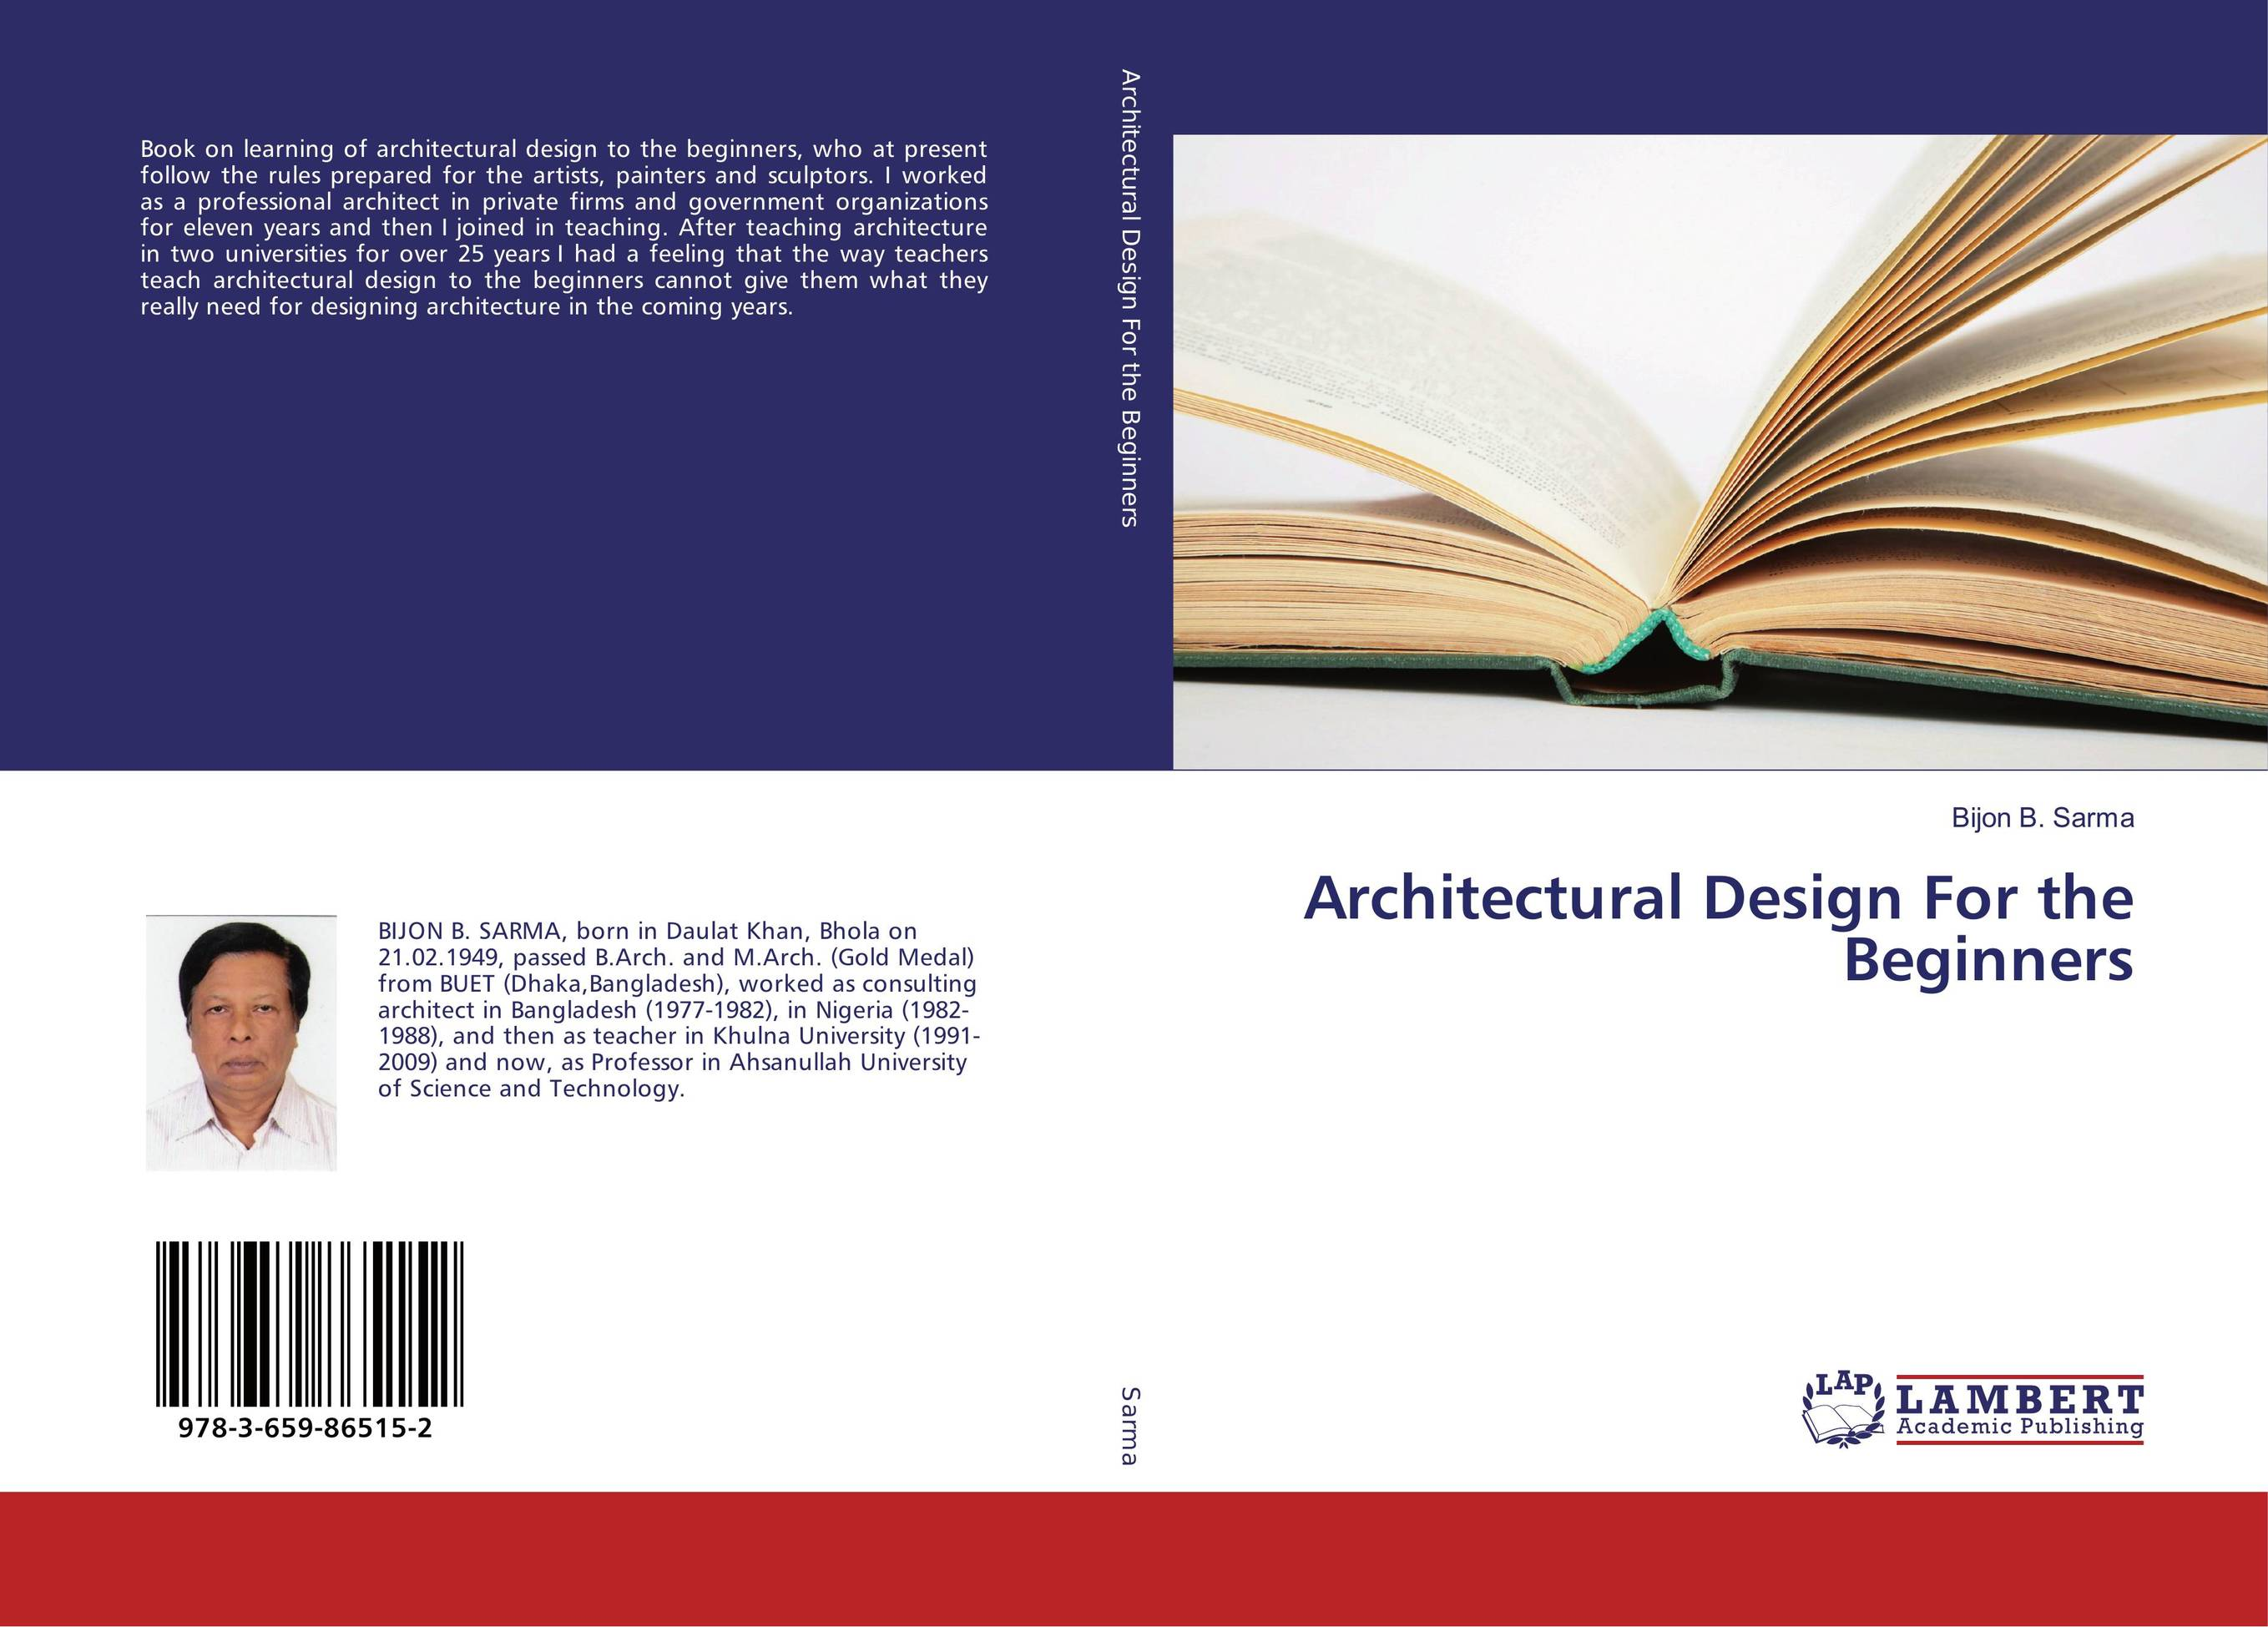 Architectural Design For the Beginners